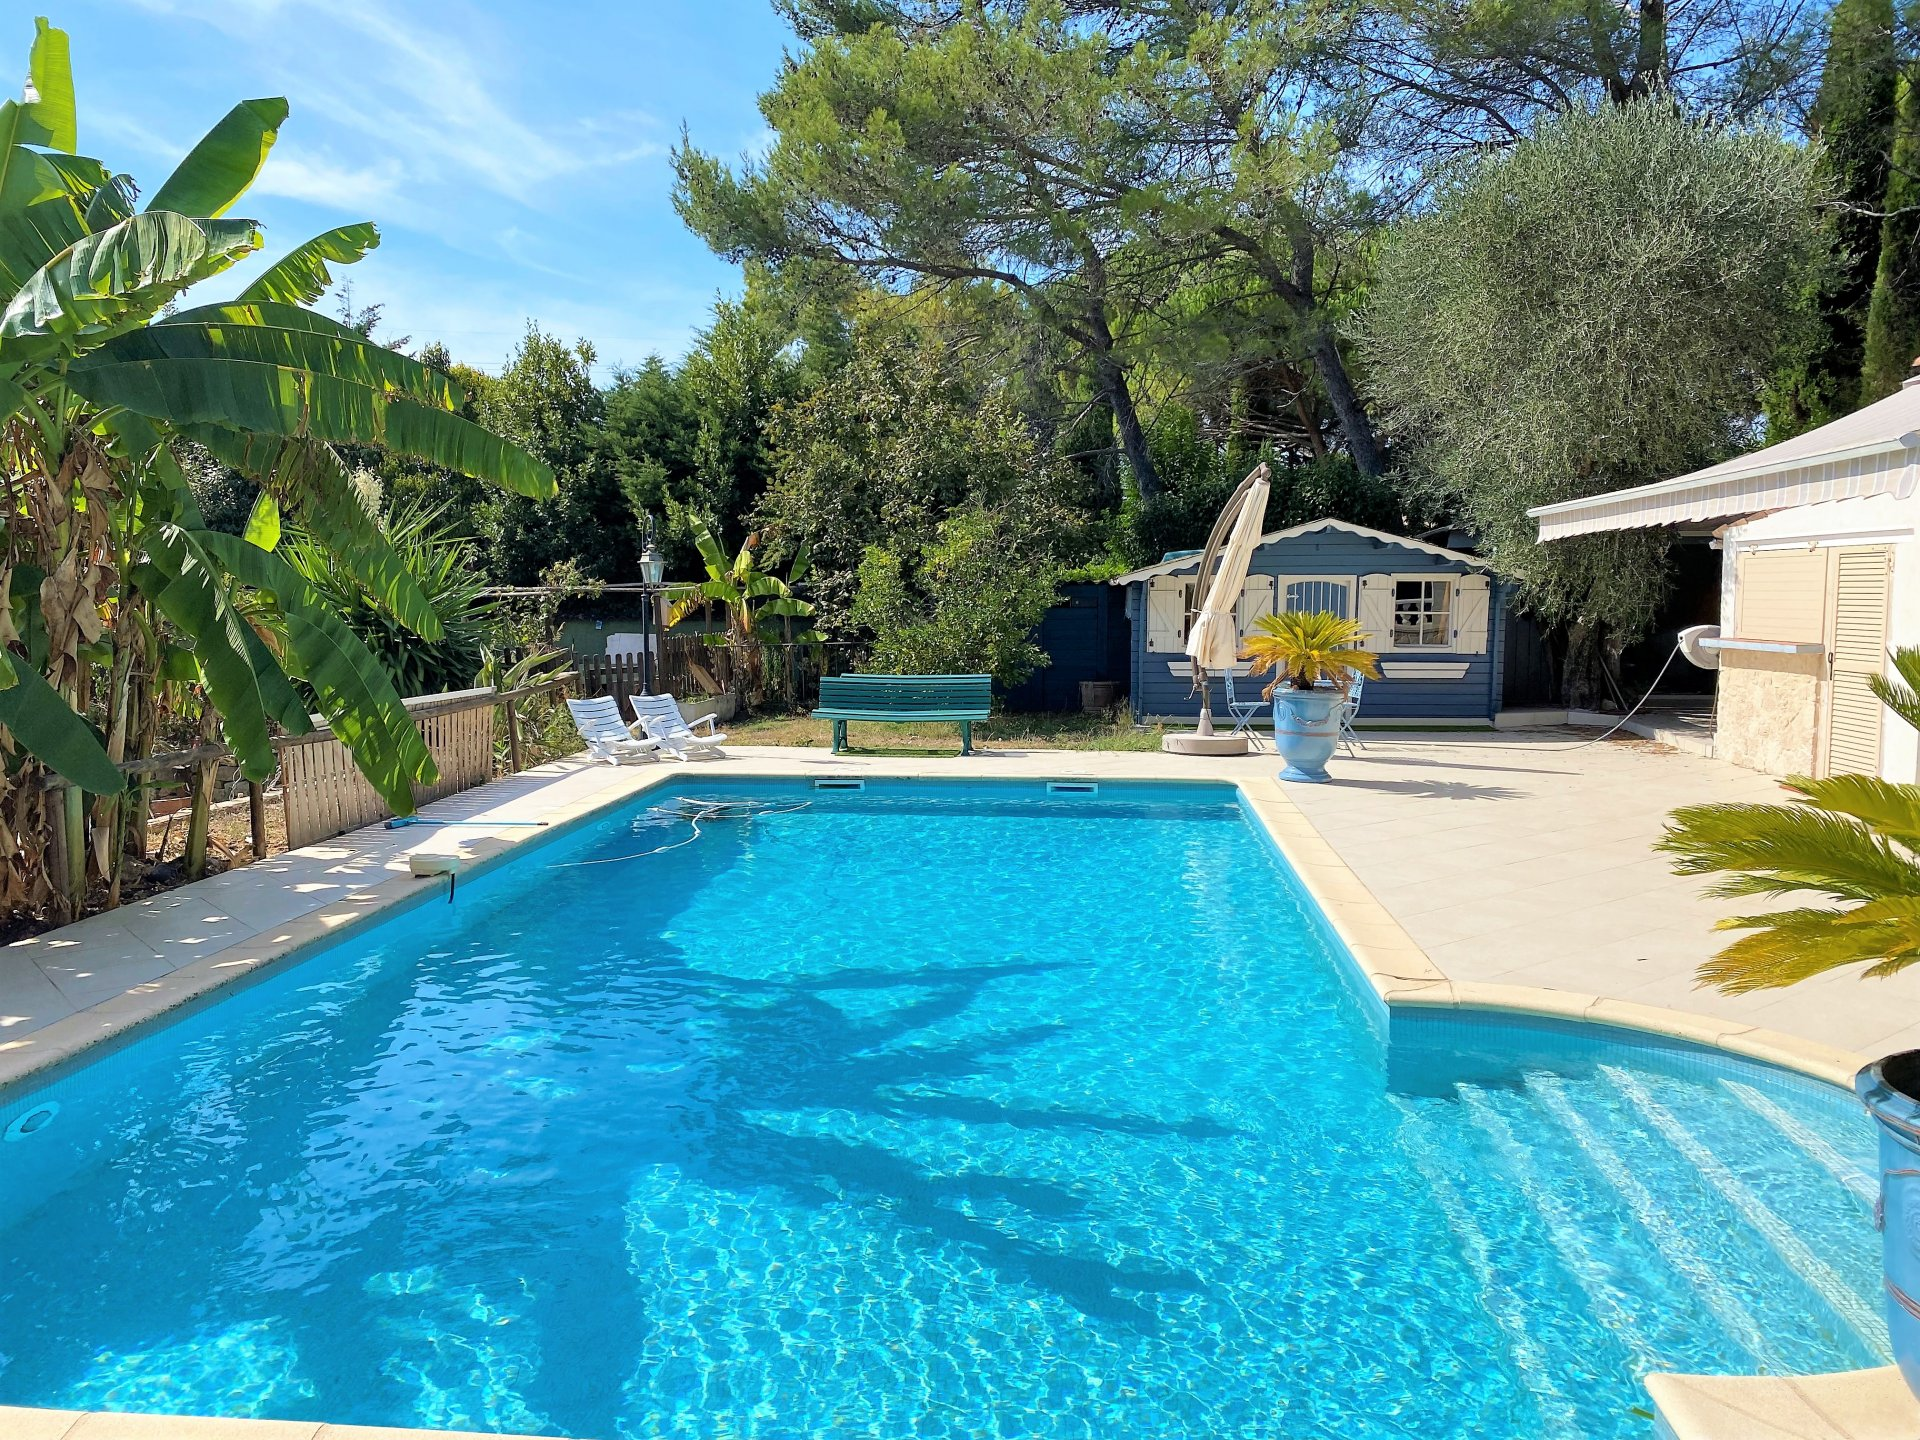 MOUGINS SAINT BASILE SALE DETACHED HOUSE WITH POOL ABSOLUTE CALM